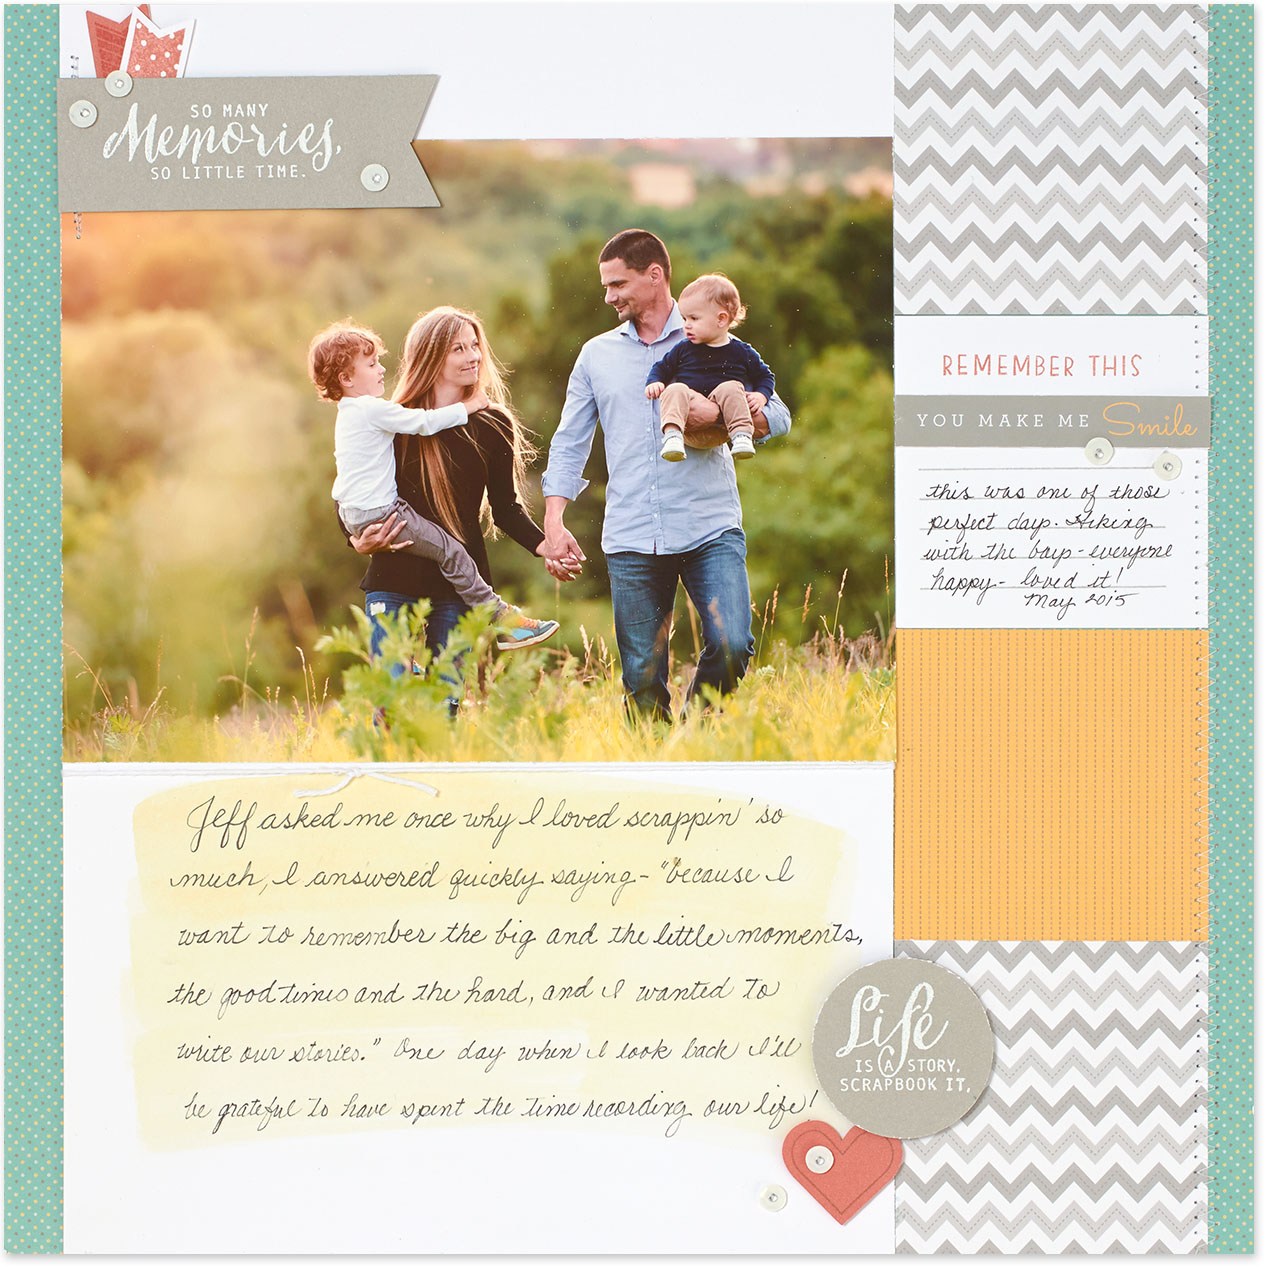 National Scrapbooking Month Make It From Your Heart